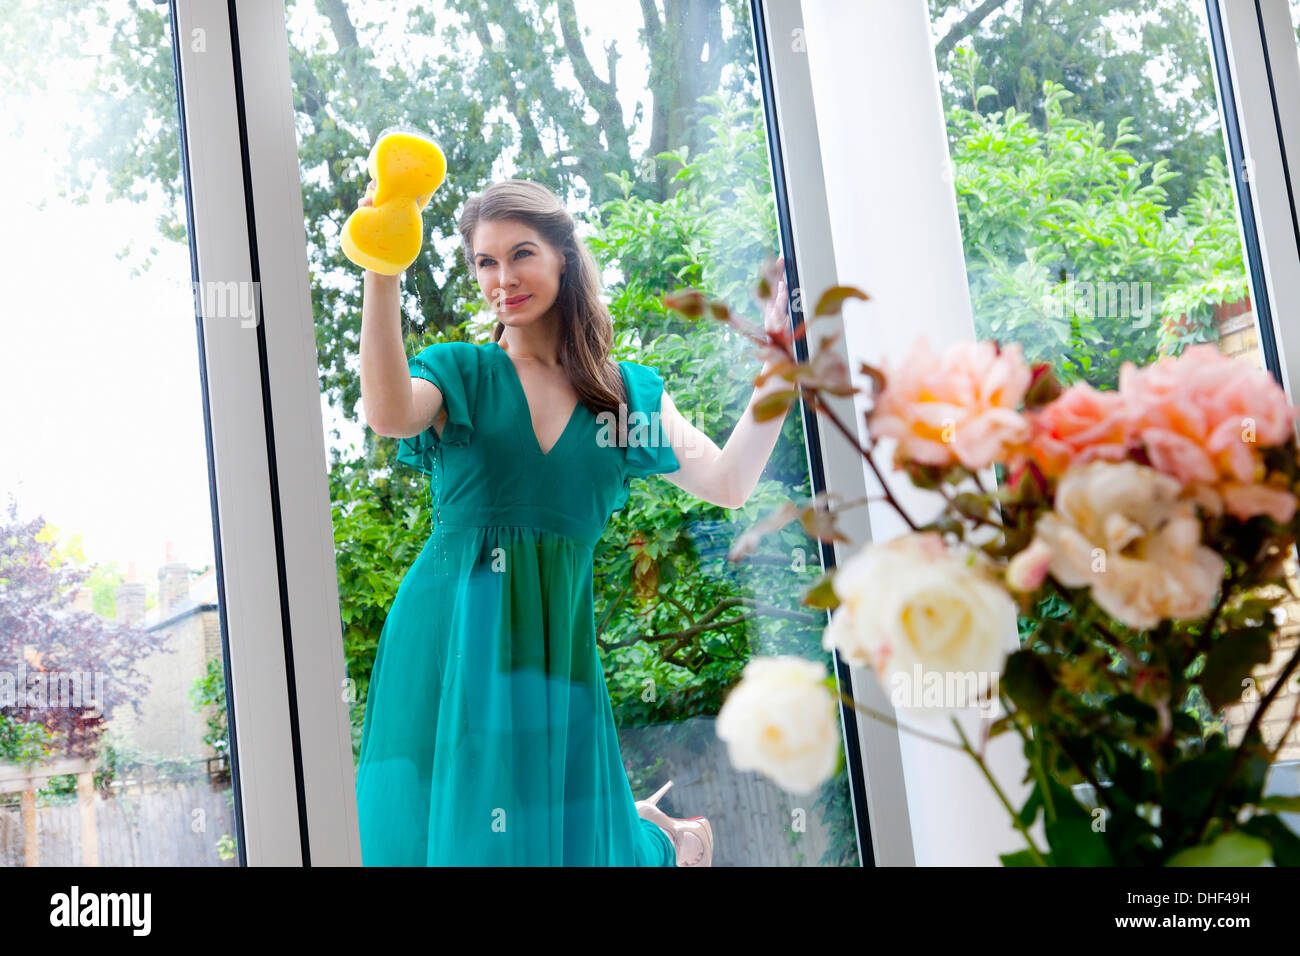 Young woman cleaning patio door - Stock Image